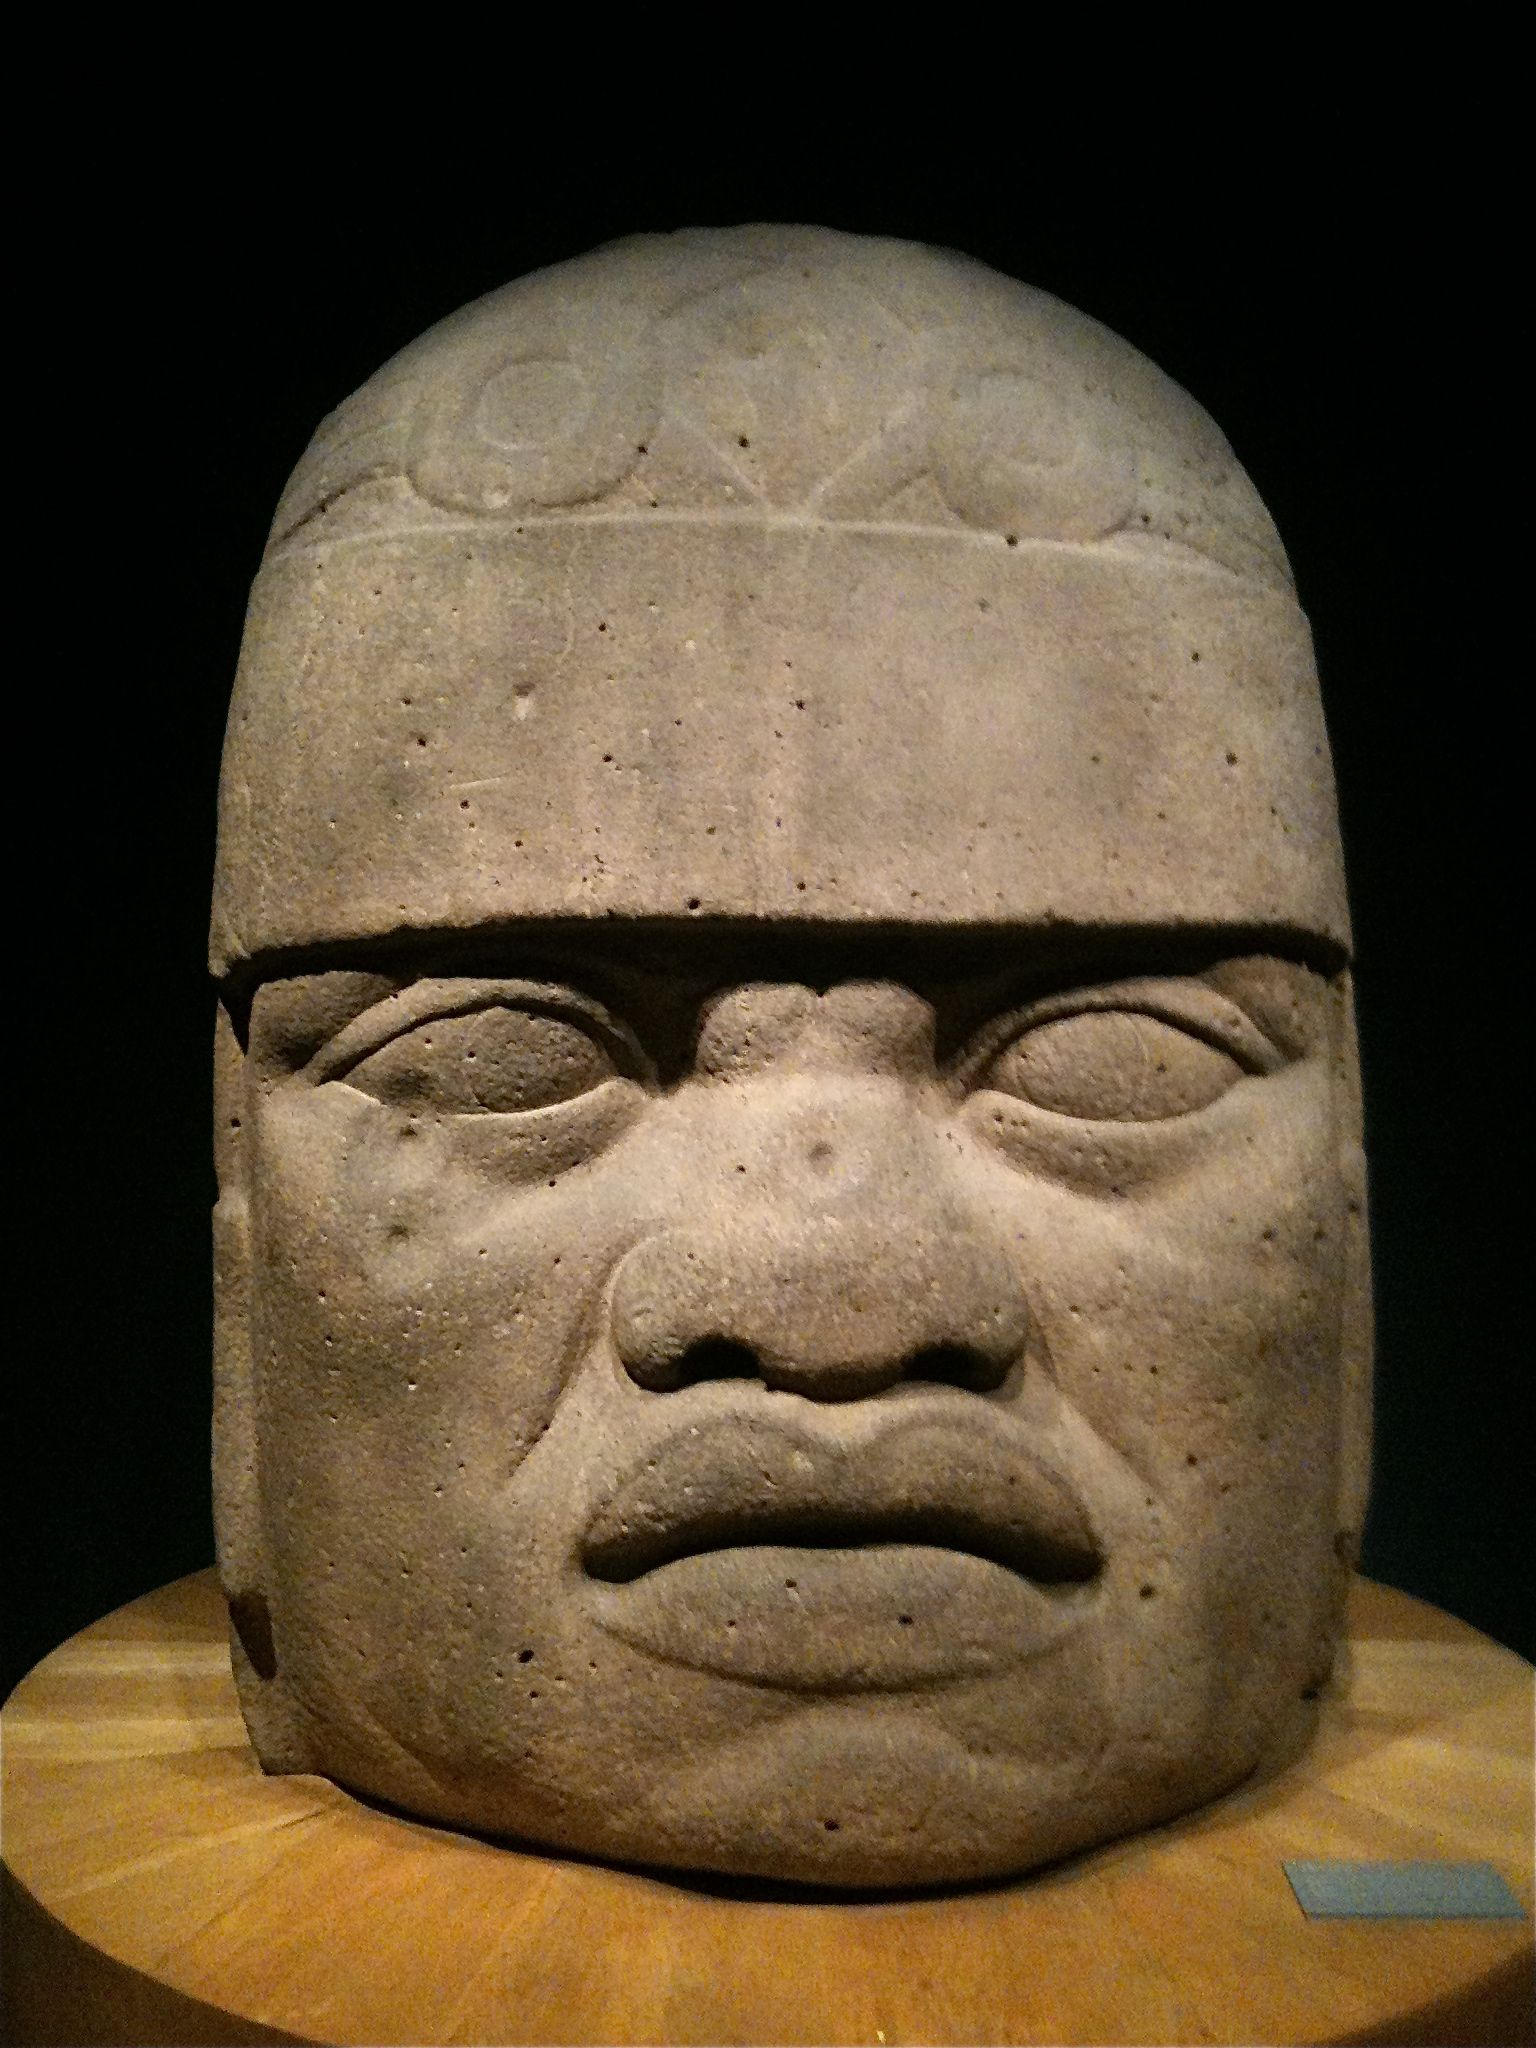 These stone structures were created by the olmecs they were found these stone structures were created by the olmecs they were found in the jungles of southern mexico some say they are ancient astronauts publicscrutiny Images